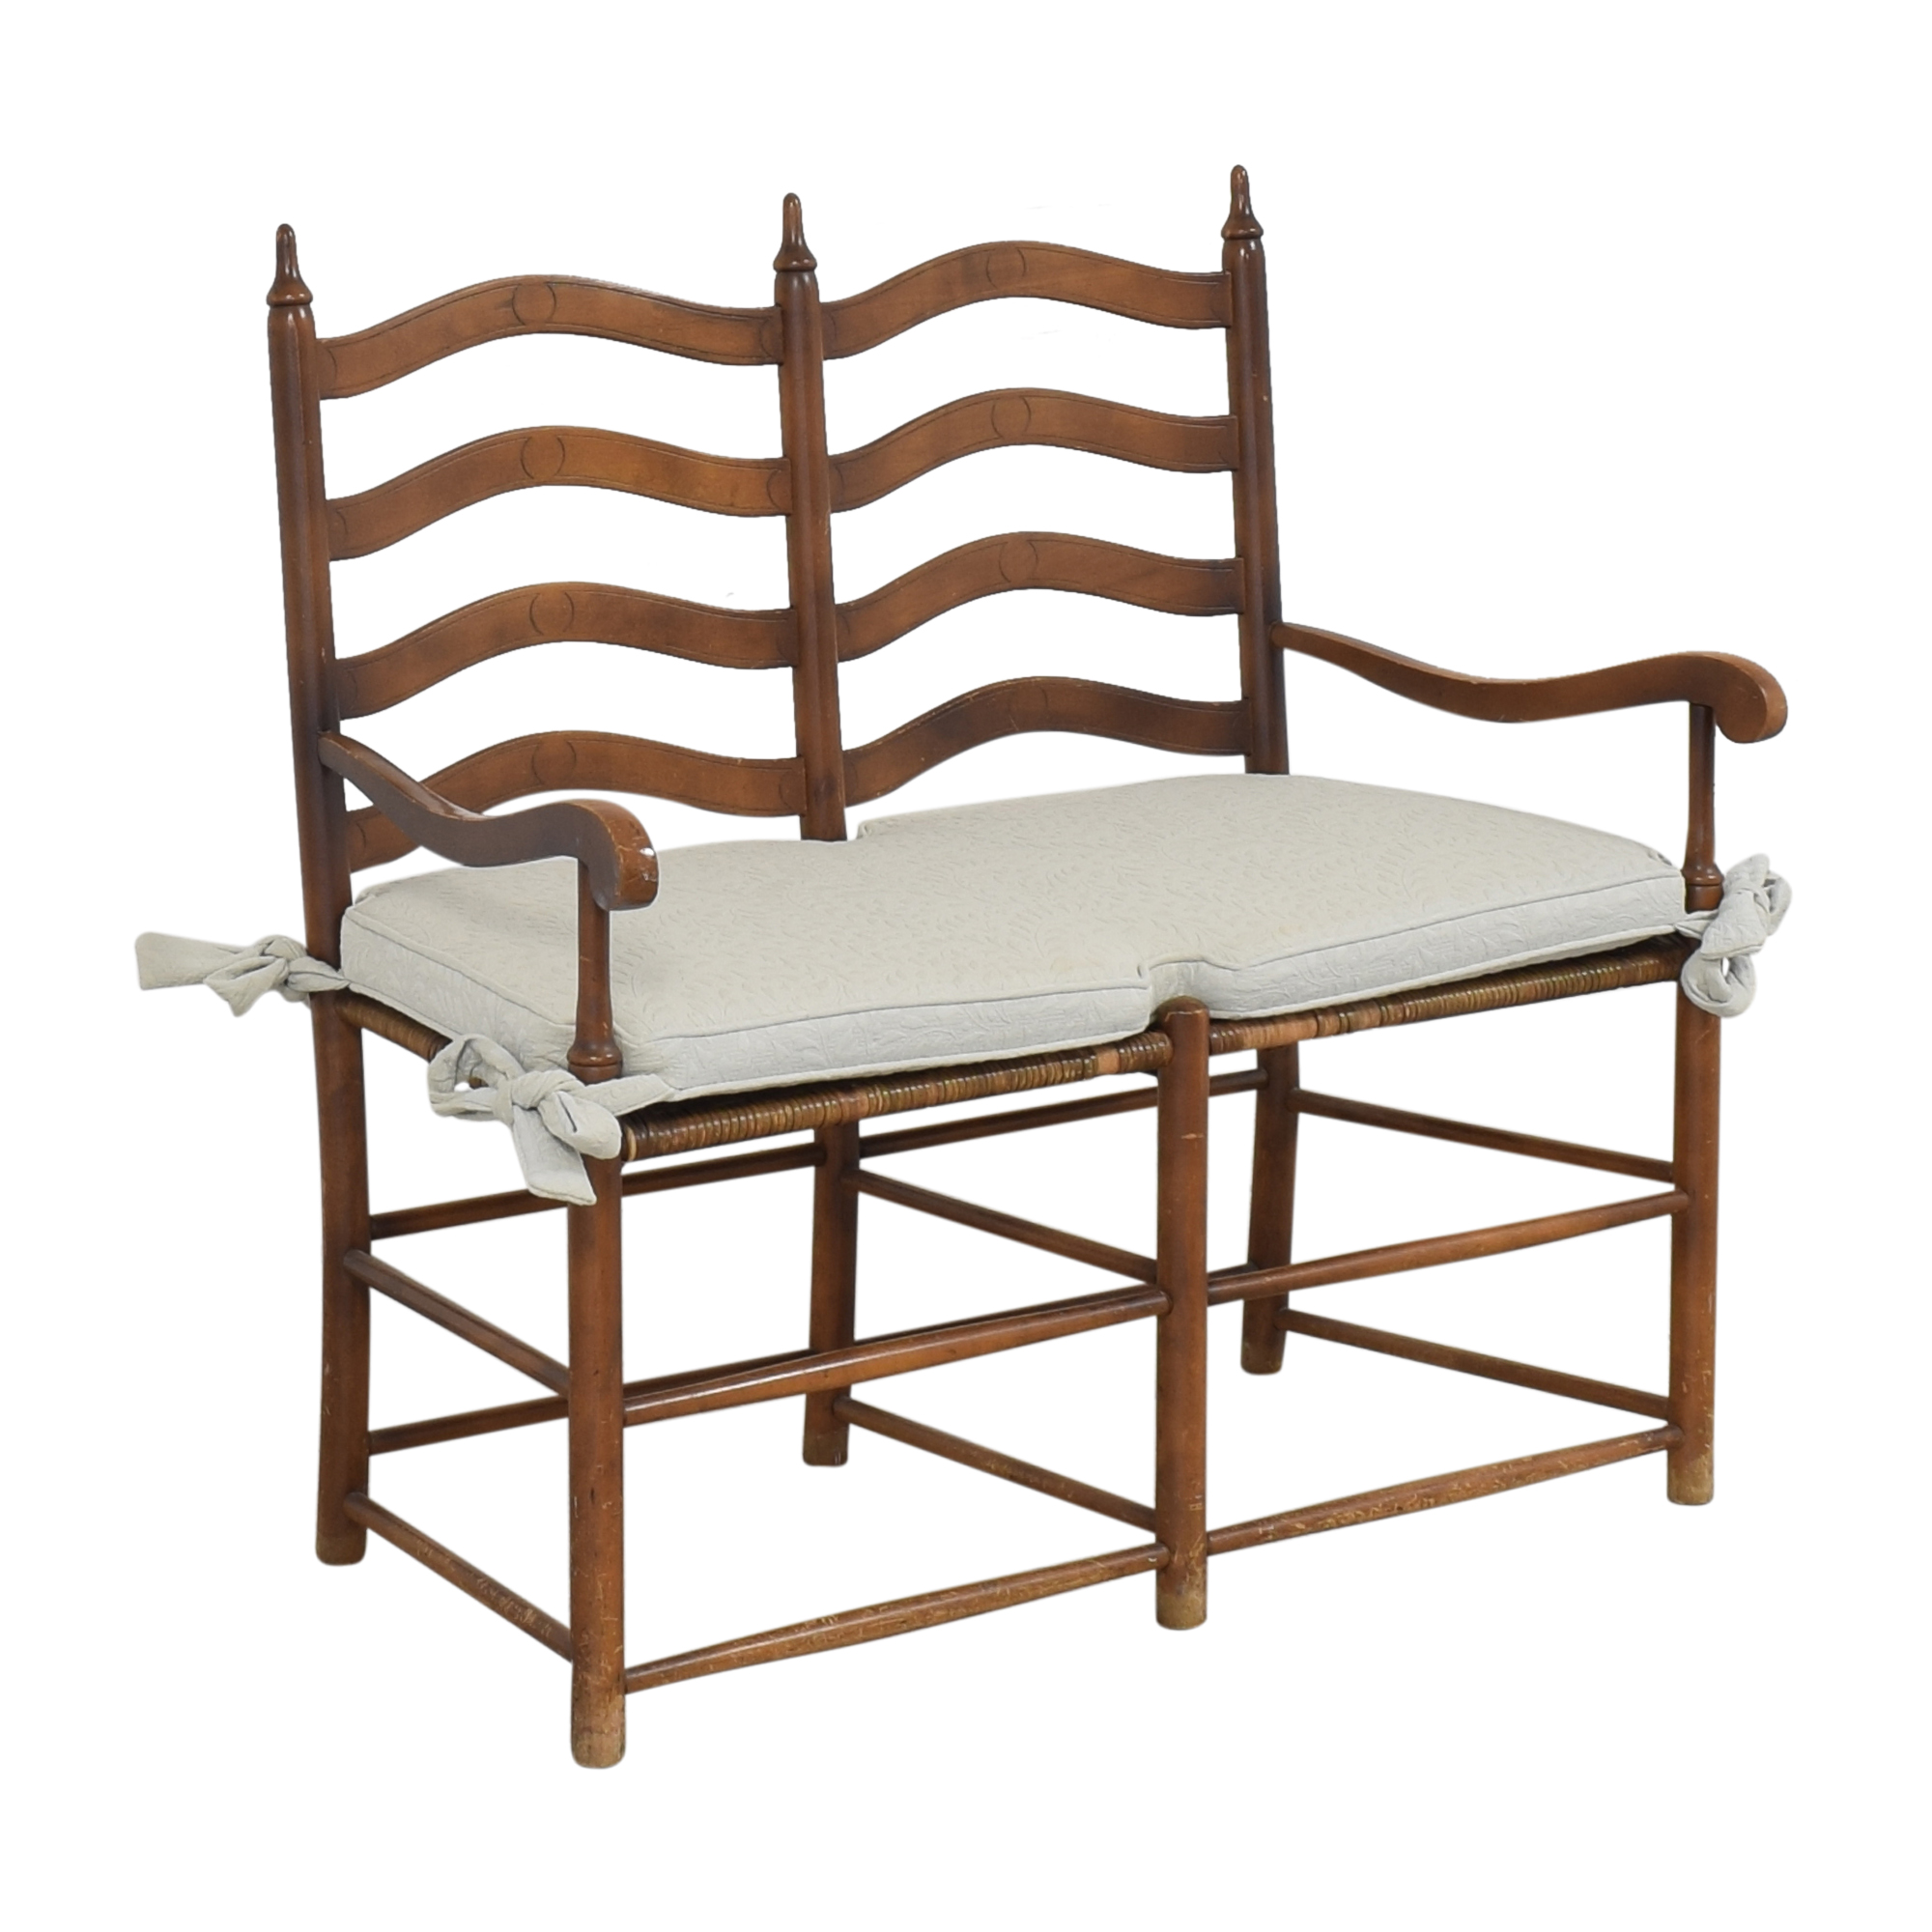 Ladderback Settee Bench with Cushion coupon